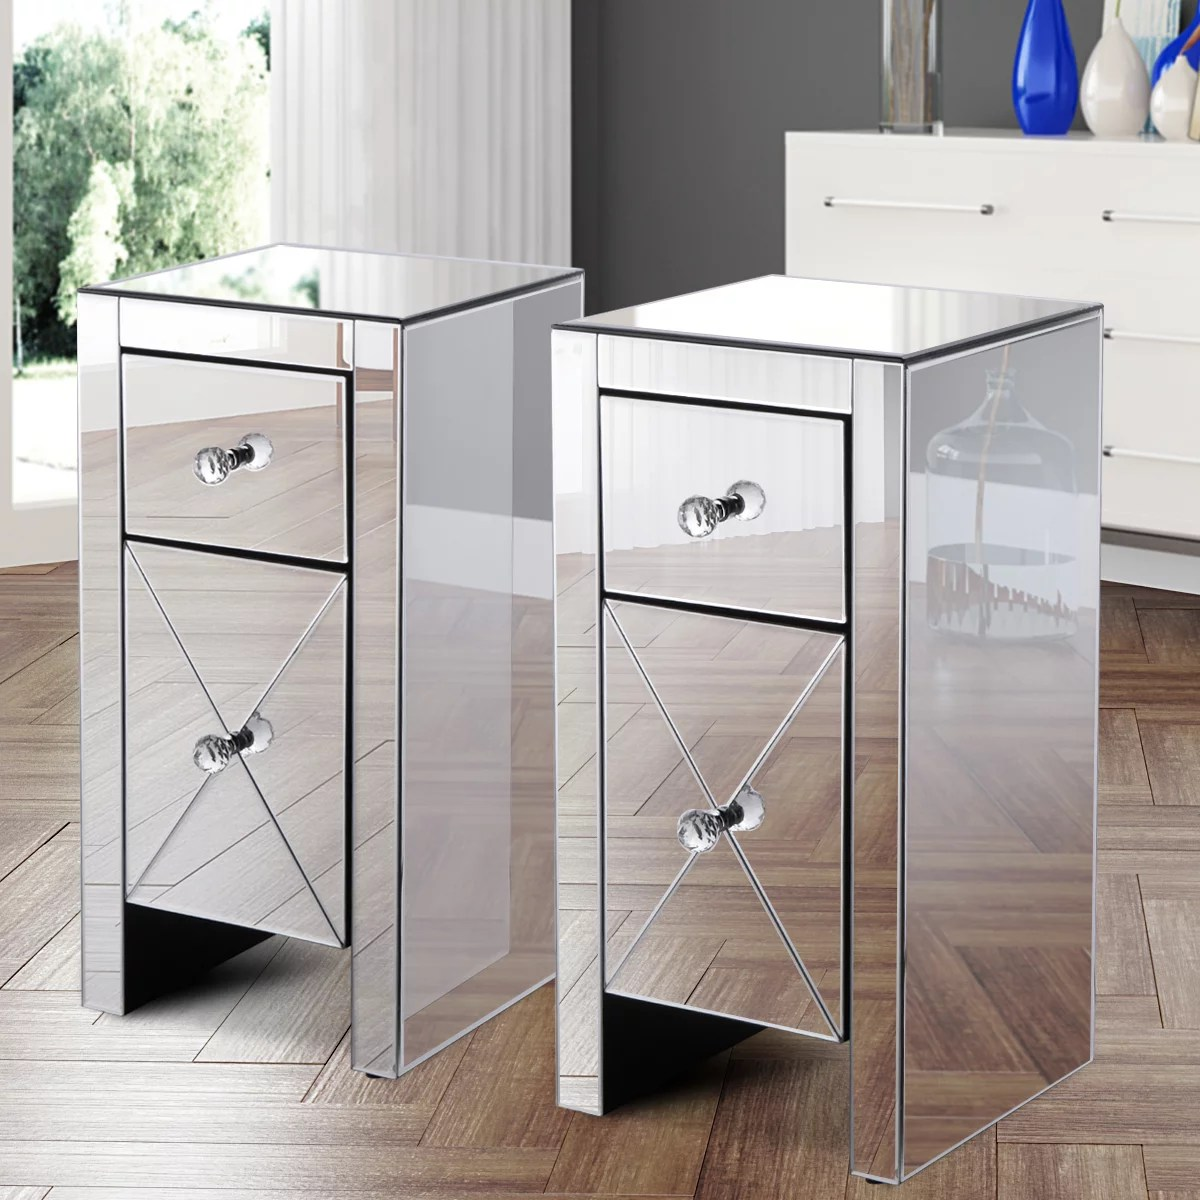 jaxpety set of 2 mirrored nightstand 2 drawer crystal accent silver side table glass bedside table furniture for bedroom living room walmart com